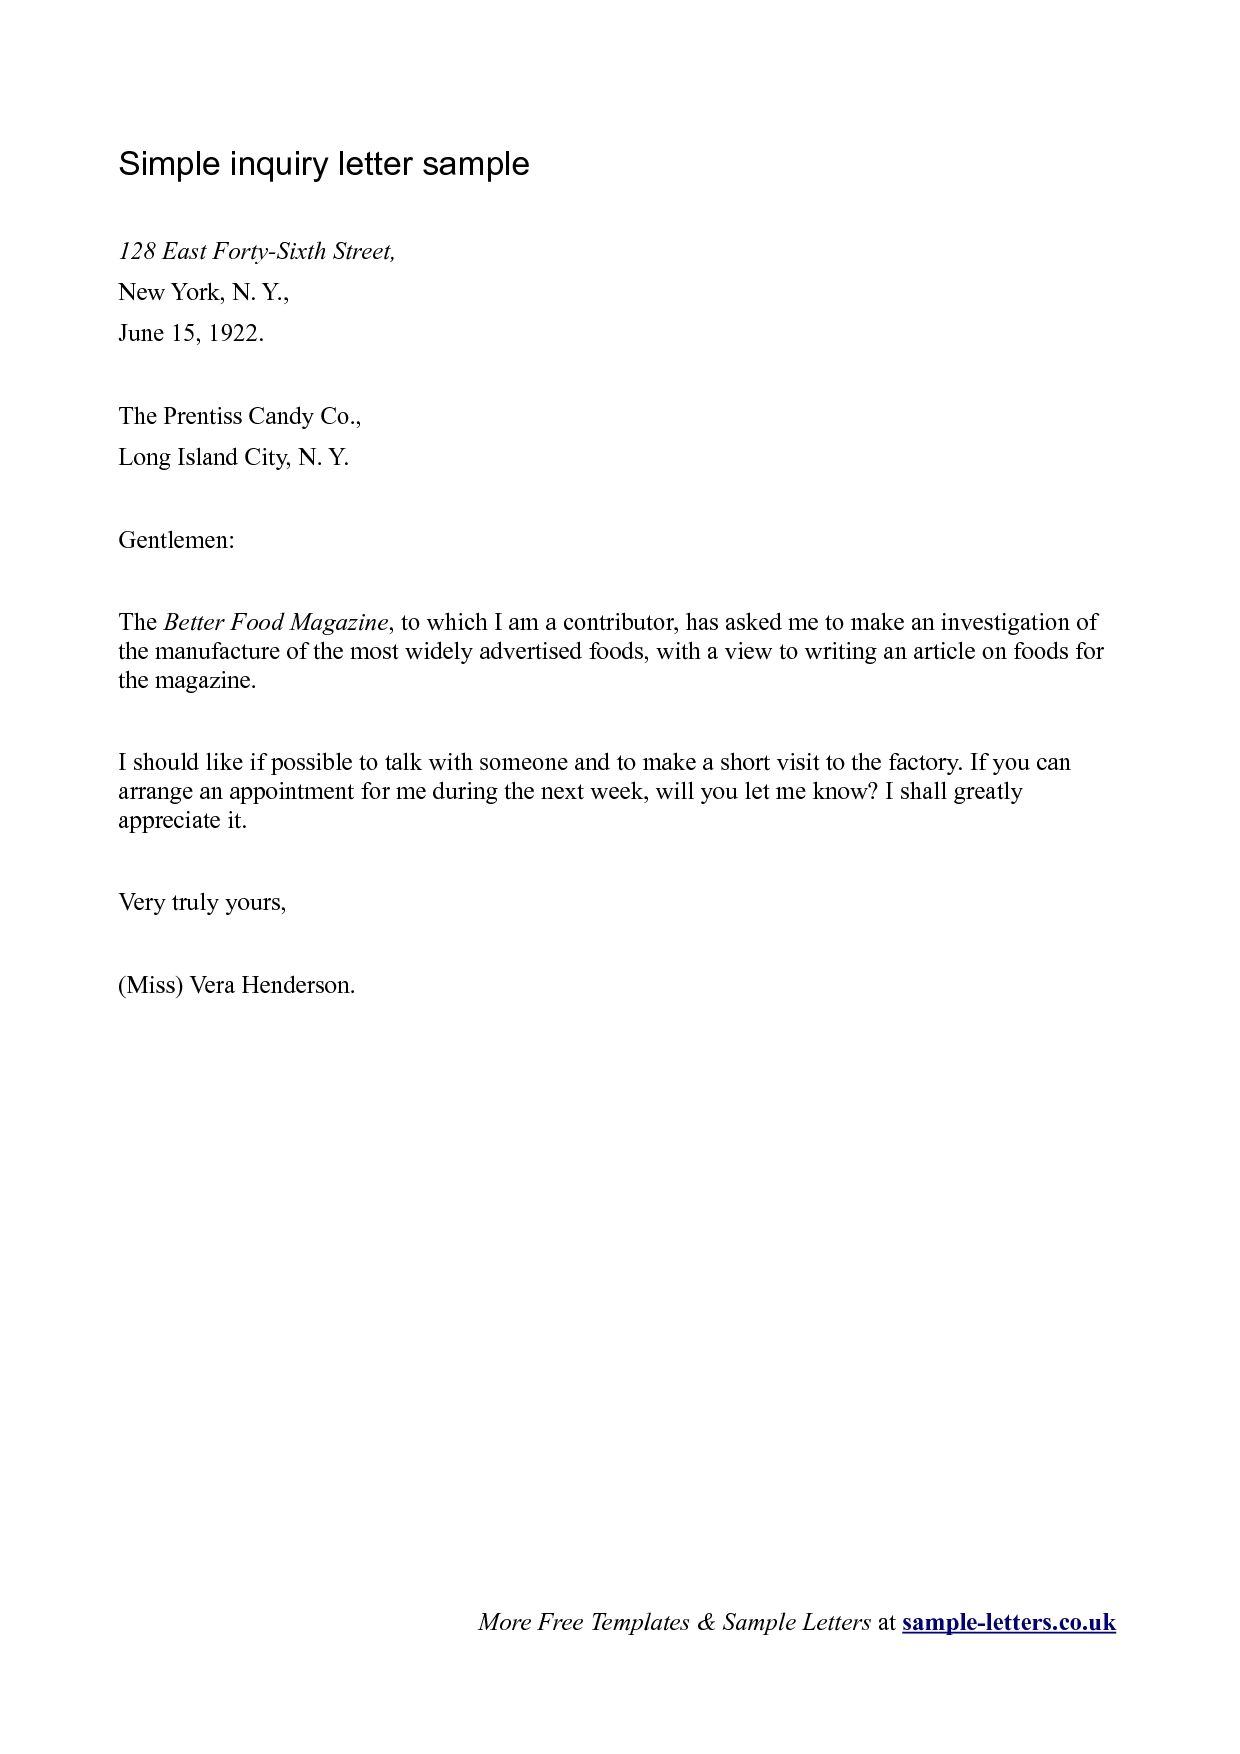 Business Letter Of Inquiry Sample The Letter Sample | Reading And